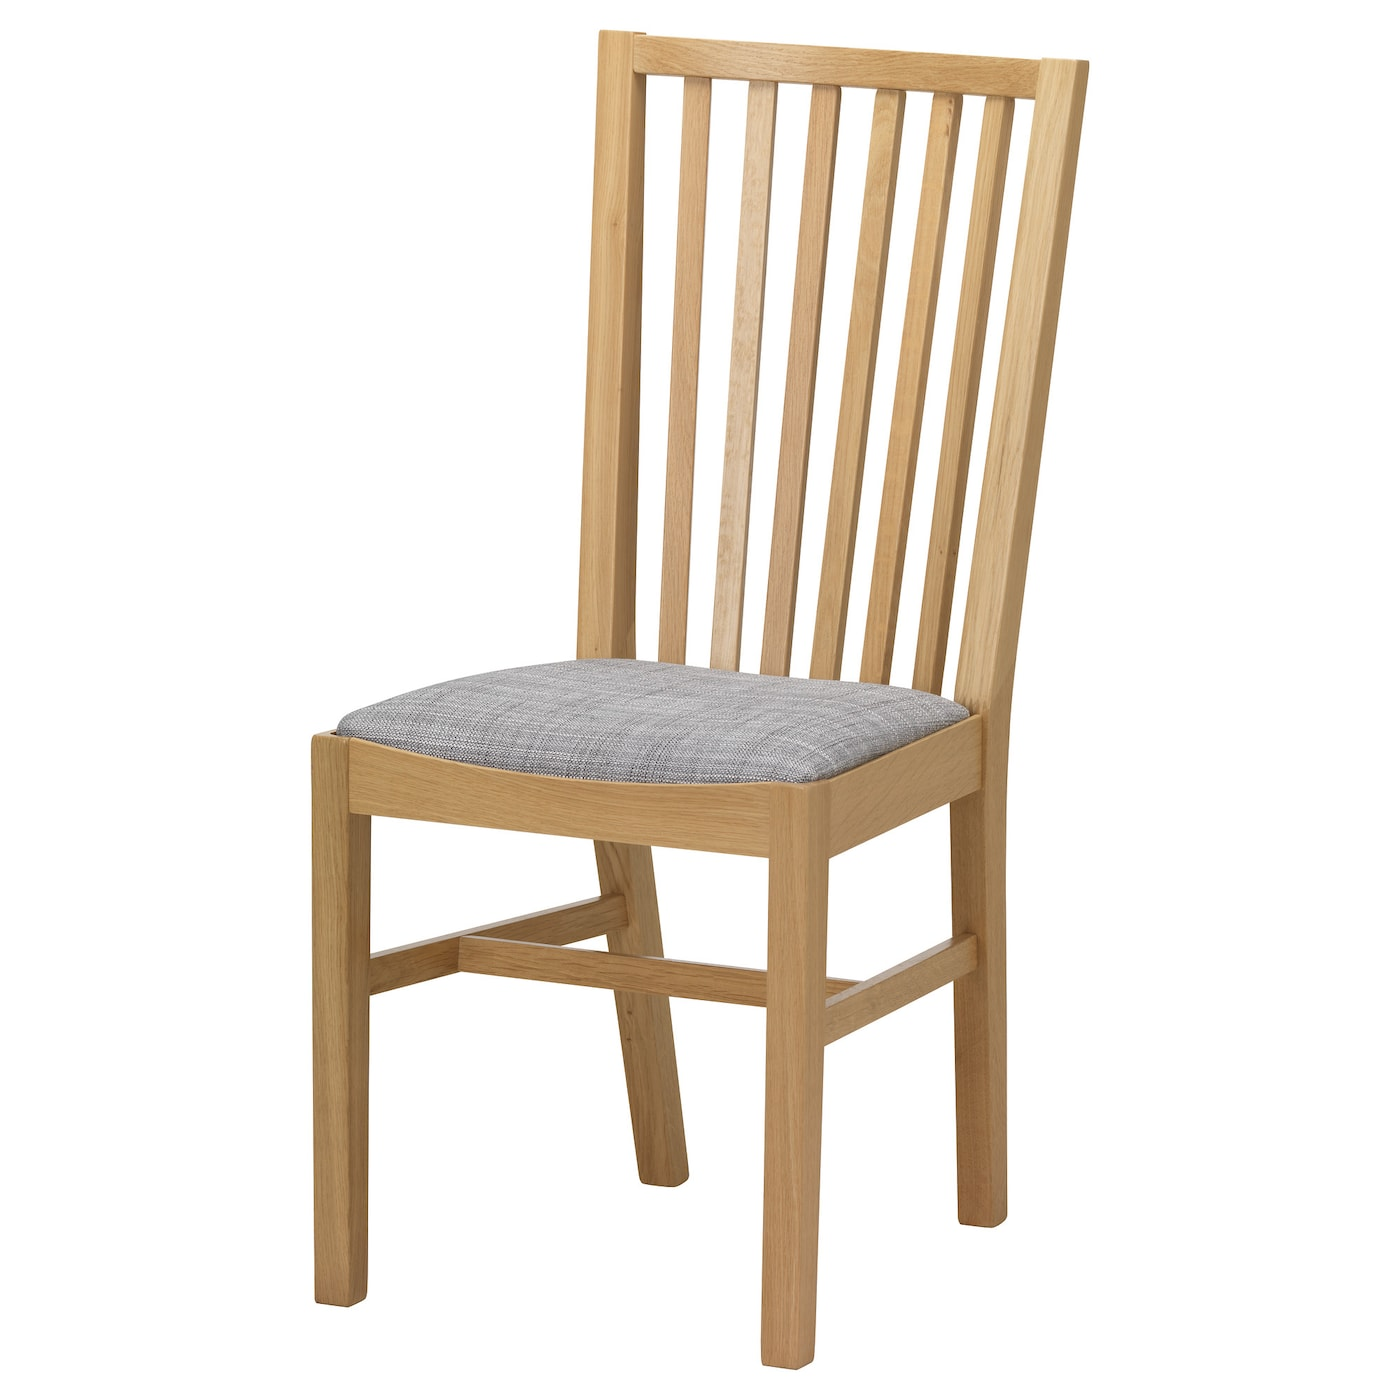 Ikea norrnäs chair solid oak is a hardwearing natural material which gives a warm natural